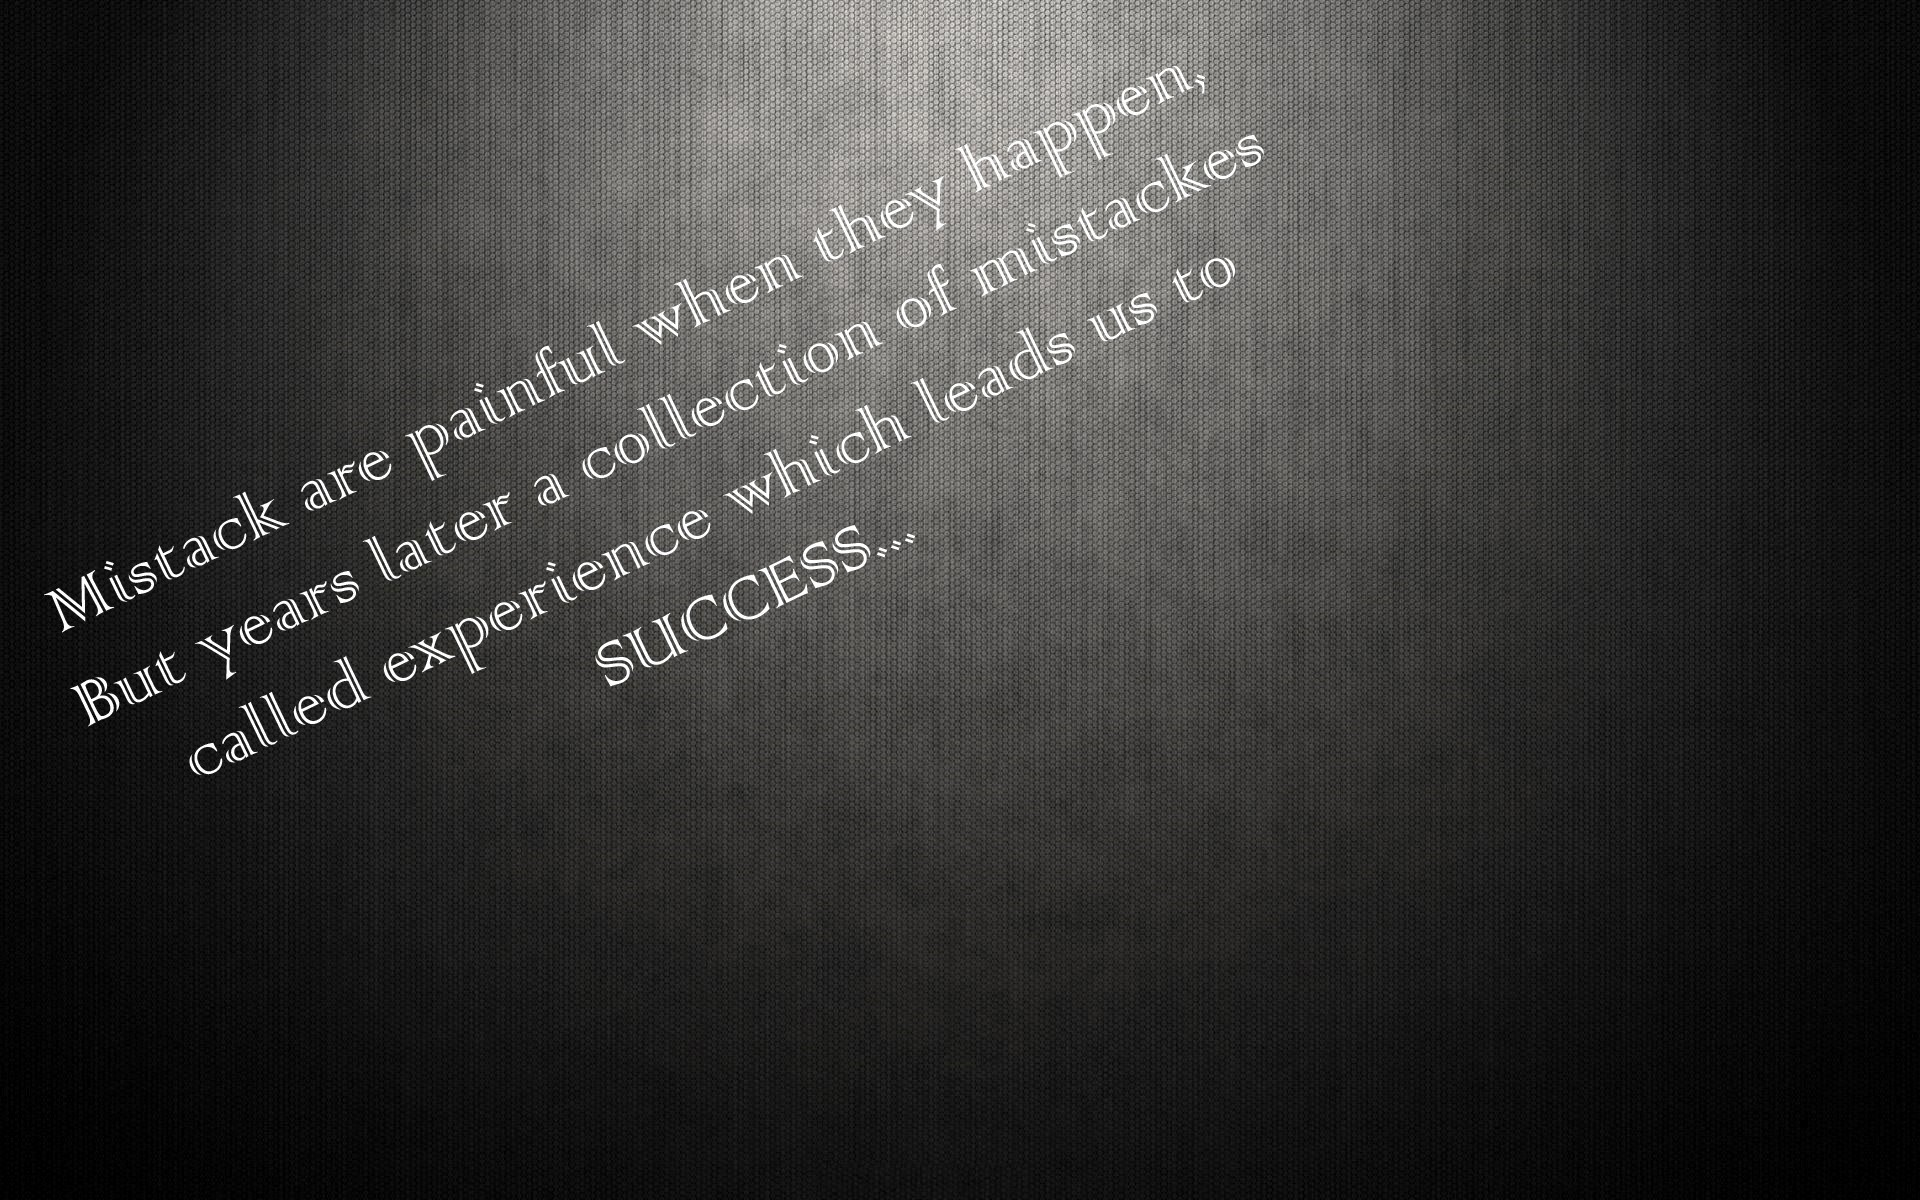 Success Quotes Wallpapers  Android Apps on Google Play 1920x1200